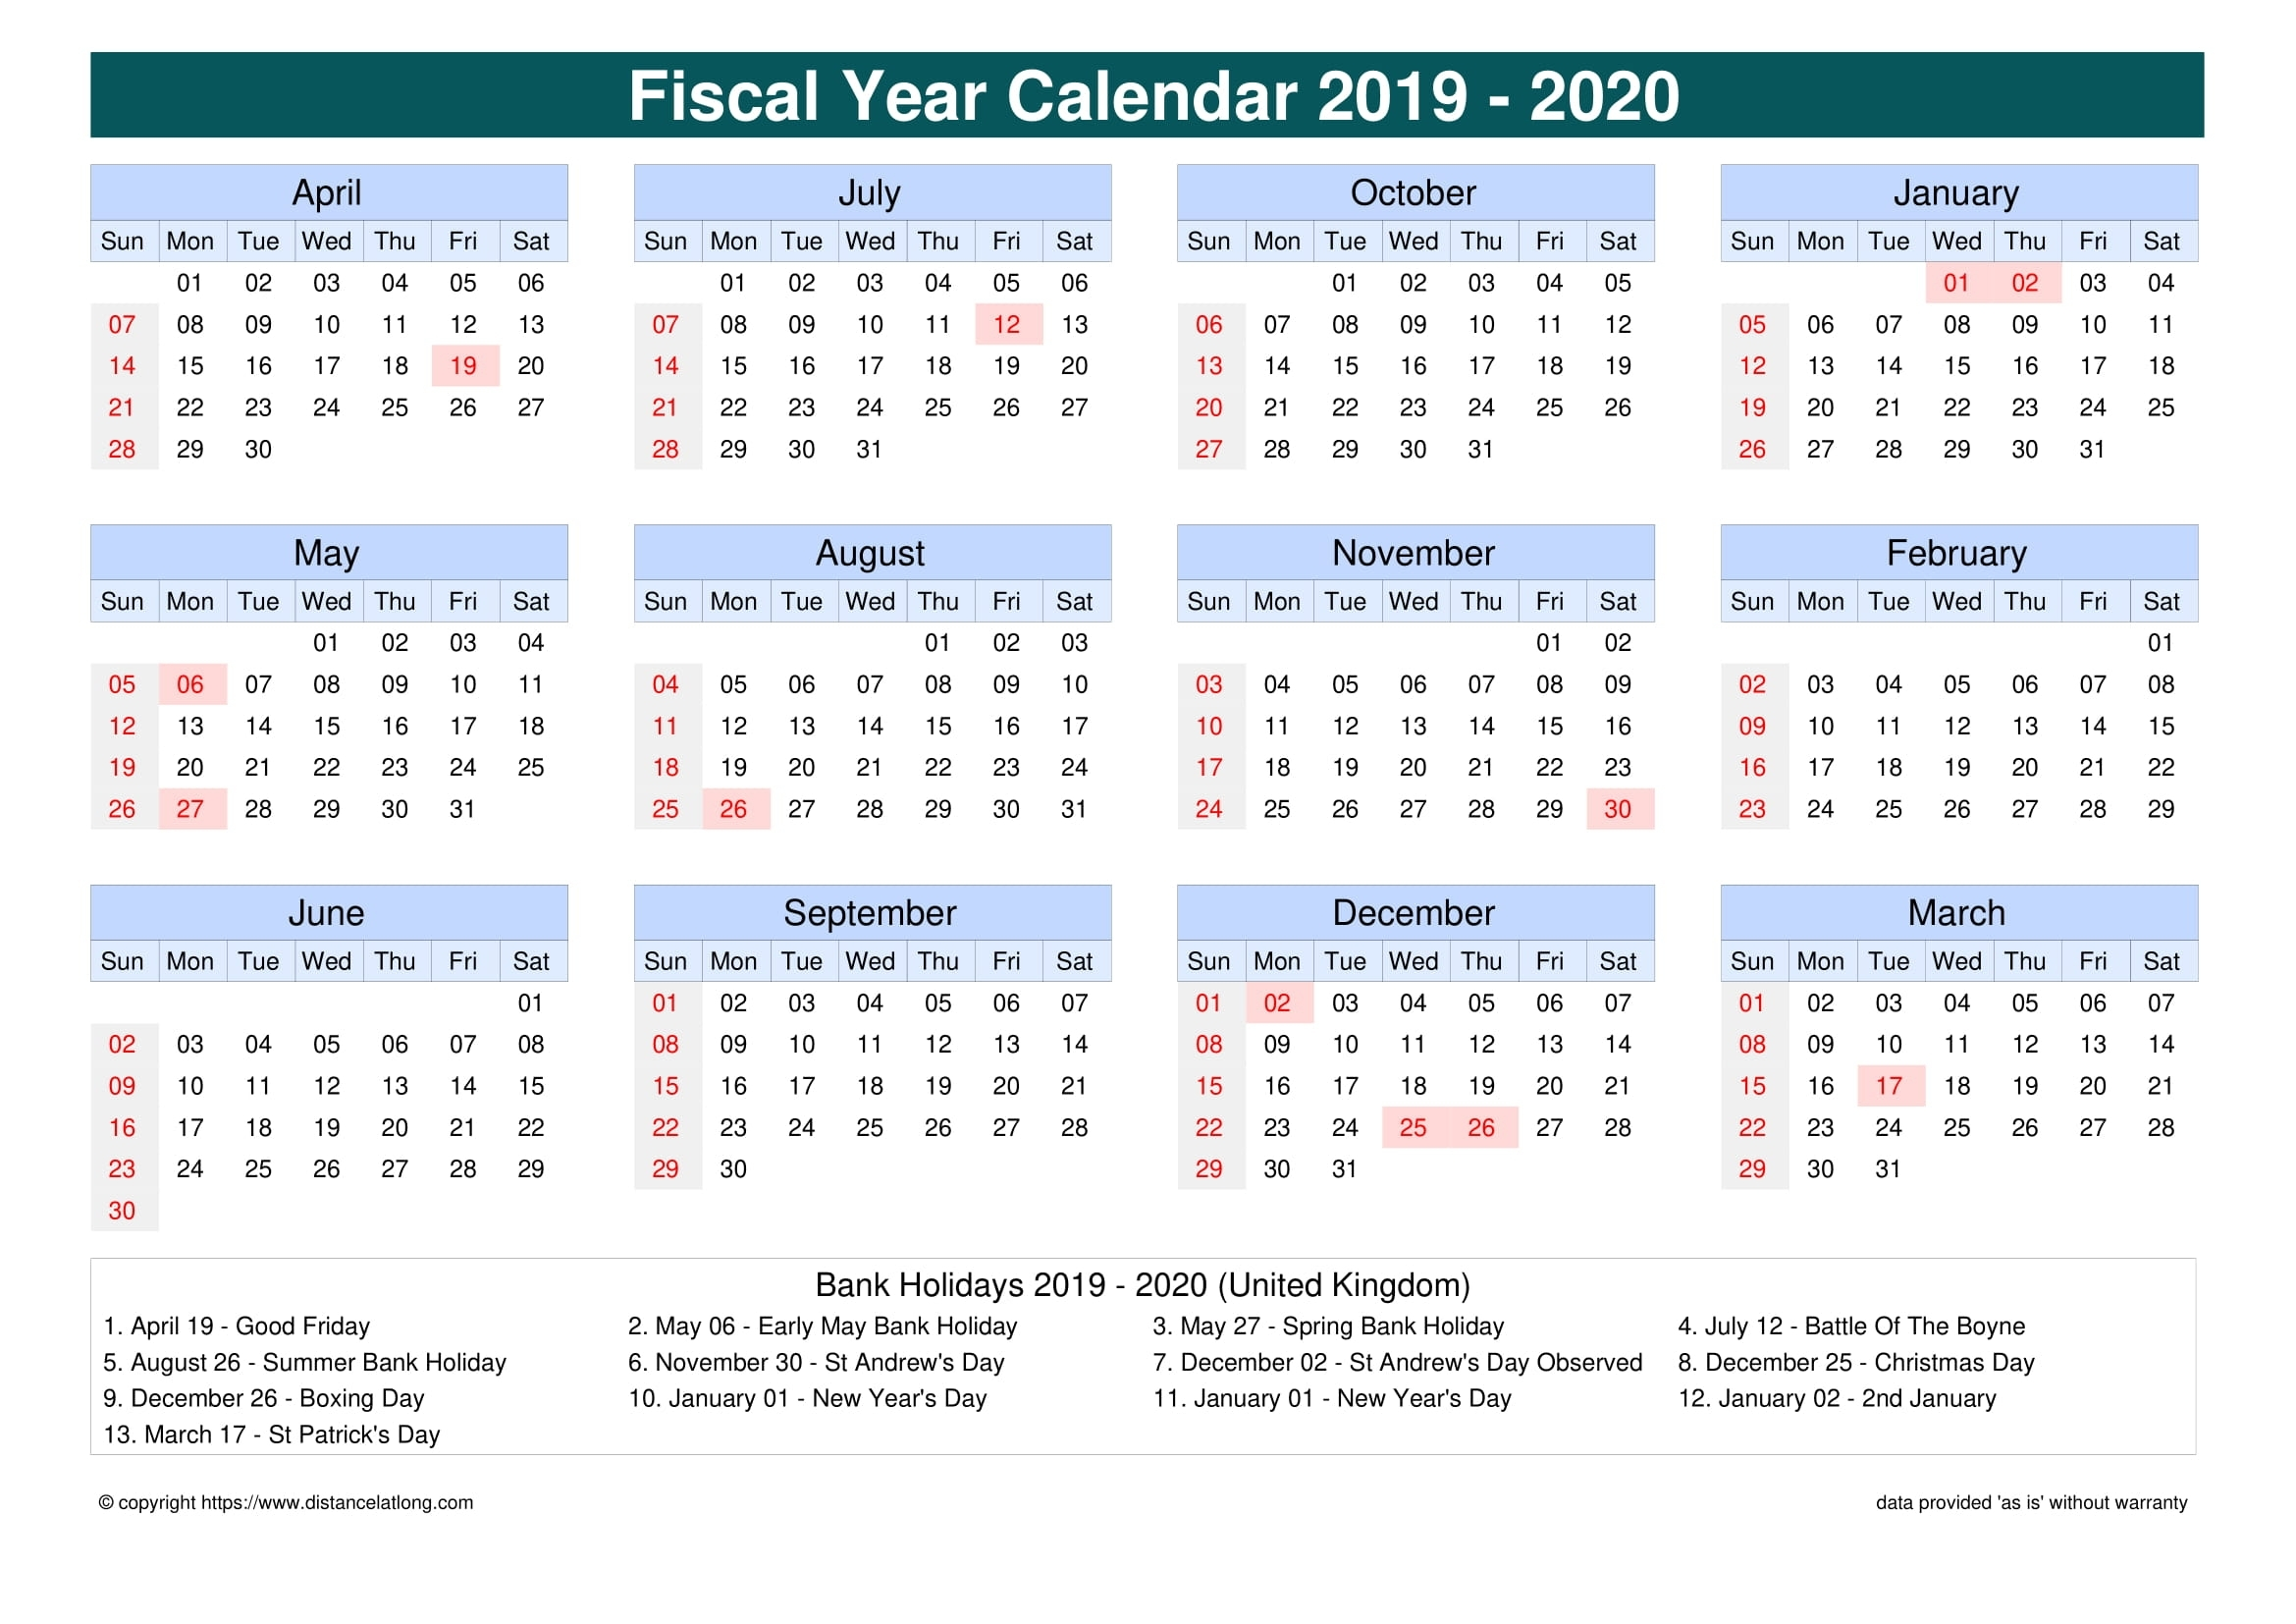 Fiscal Year 2019-2020 Calendar Templates, Free Printable for Financial Calendar 2019/2020 Week Number 25